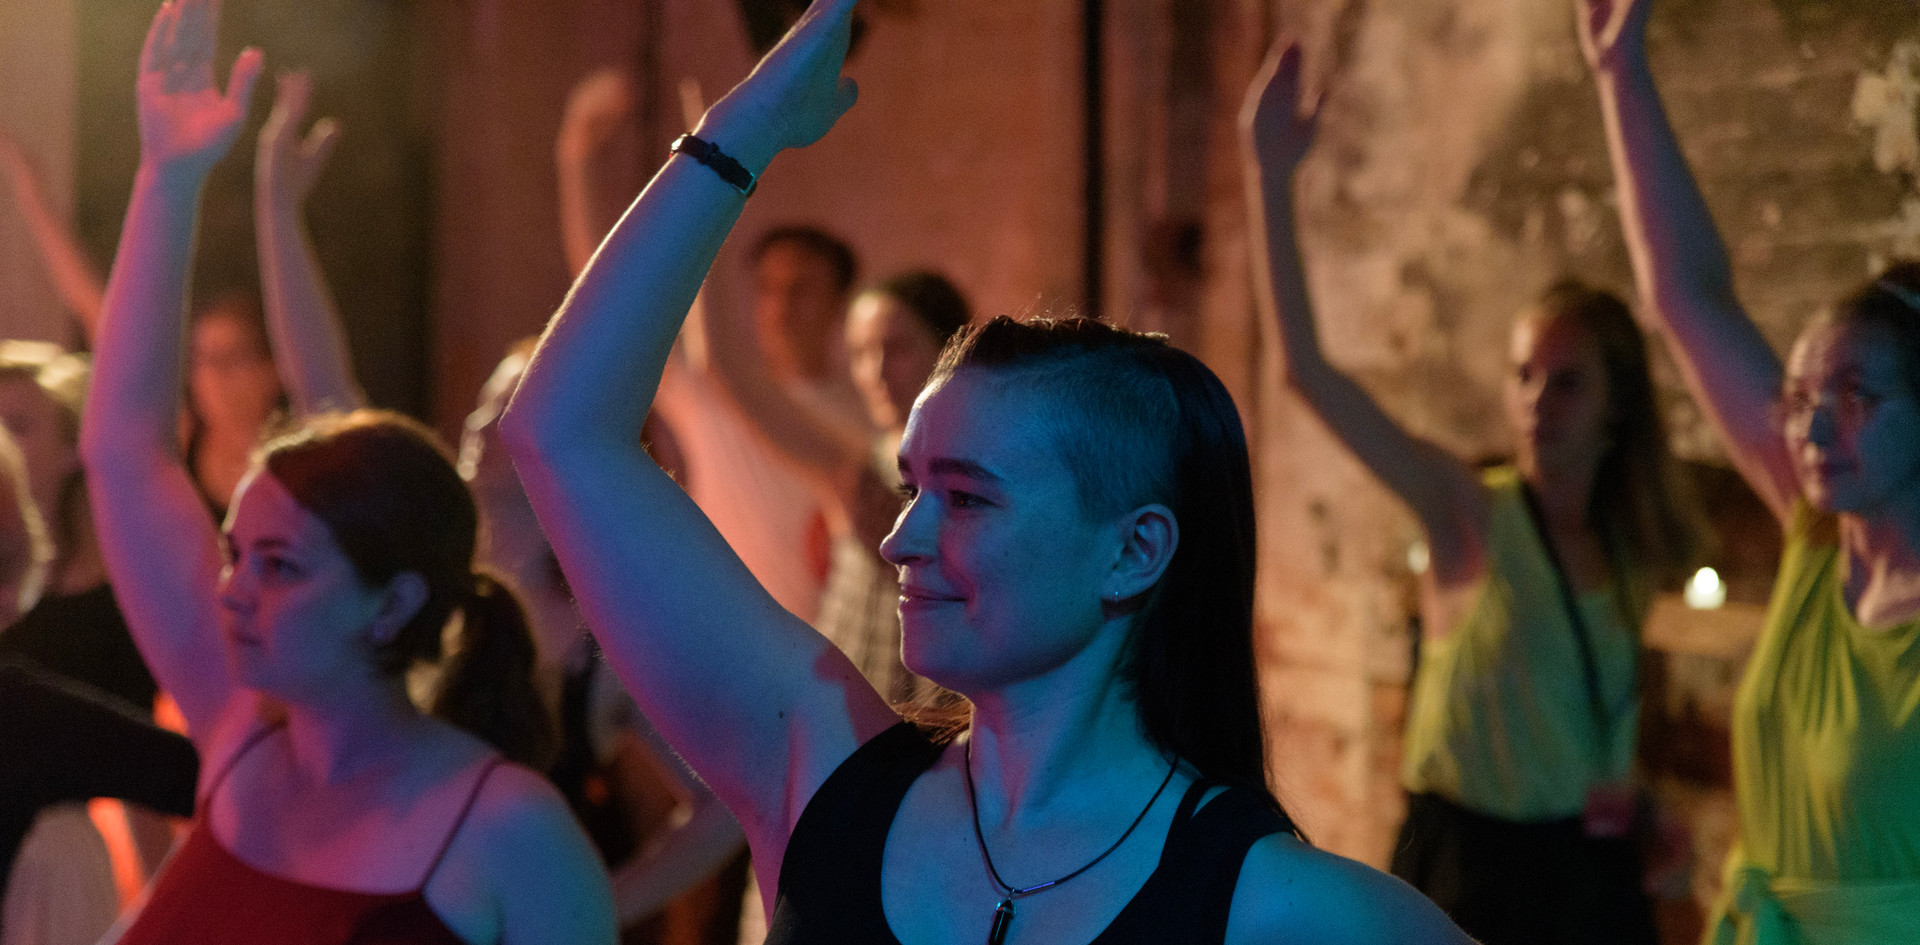 From Shake it Up! A Shakespeare festival for Shoreditch, produced by  The Theatre Courtyard Gallery in summer 2019. ©Mishko Papic